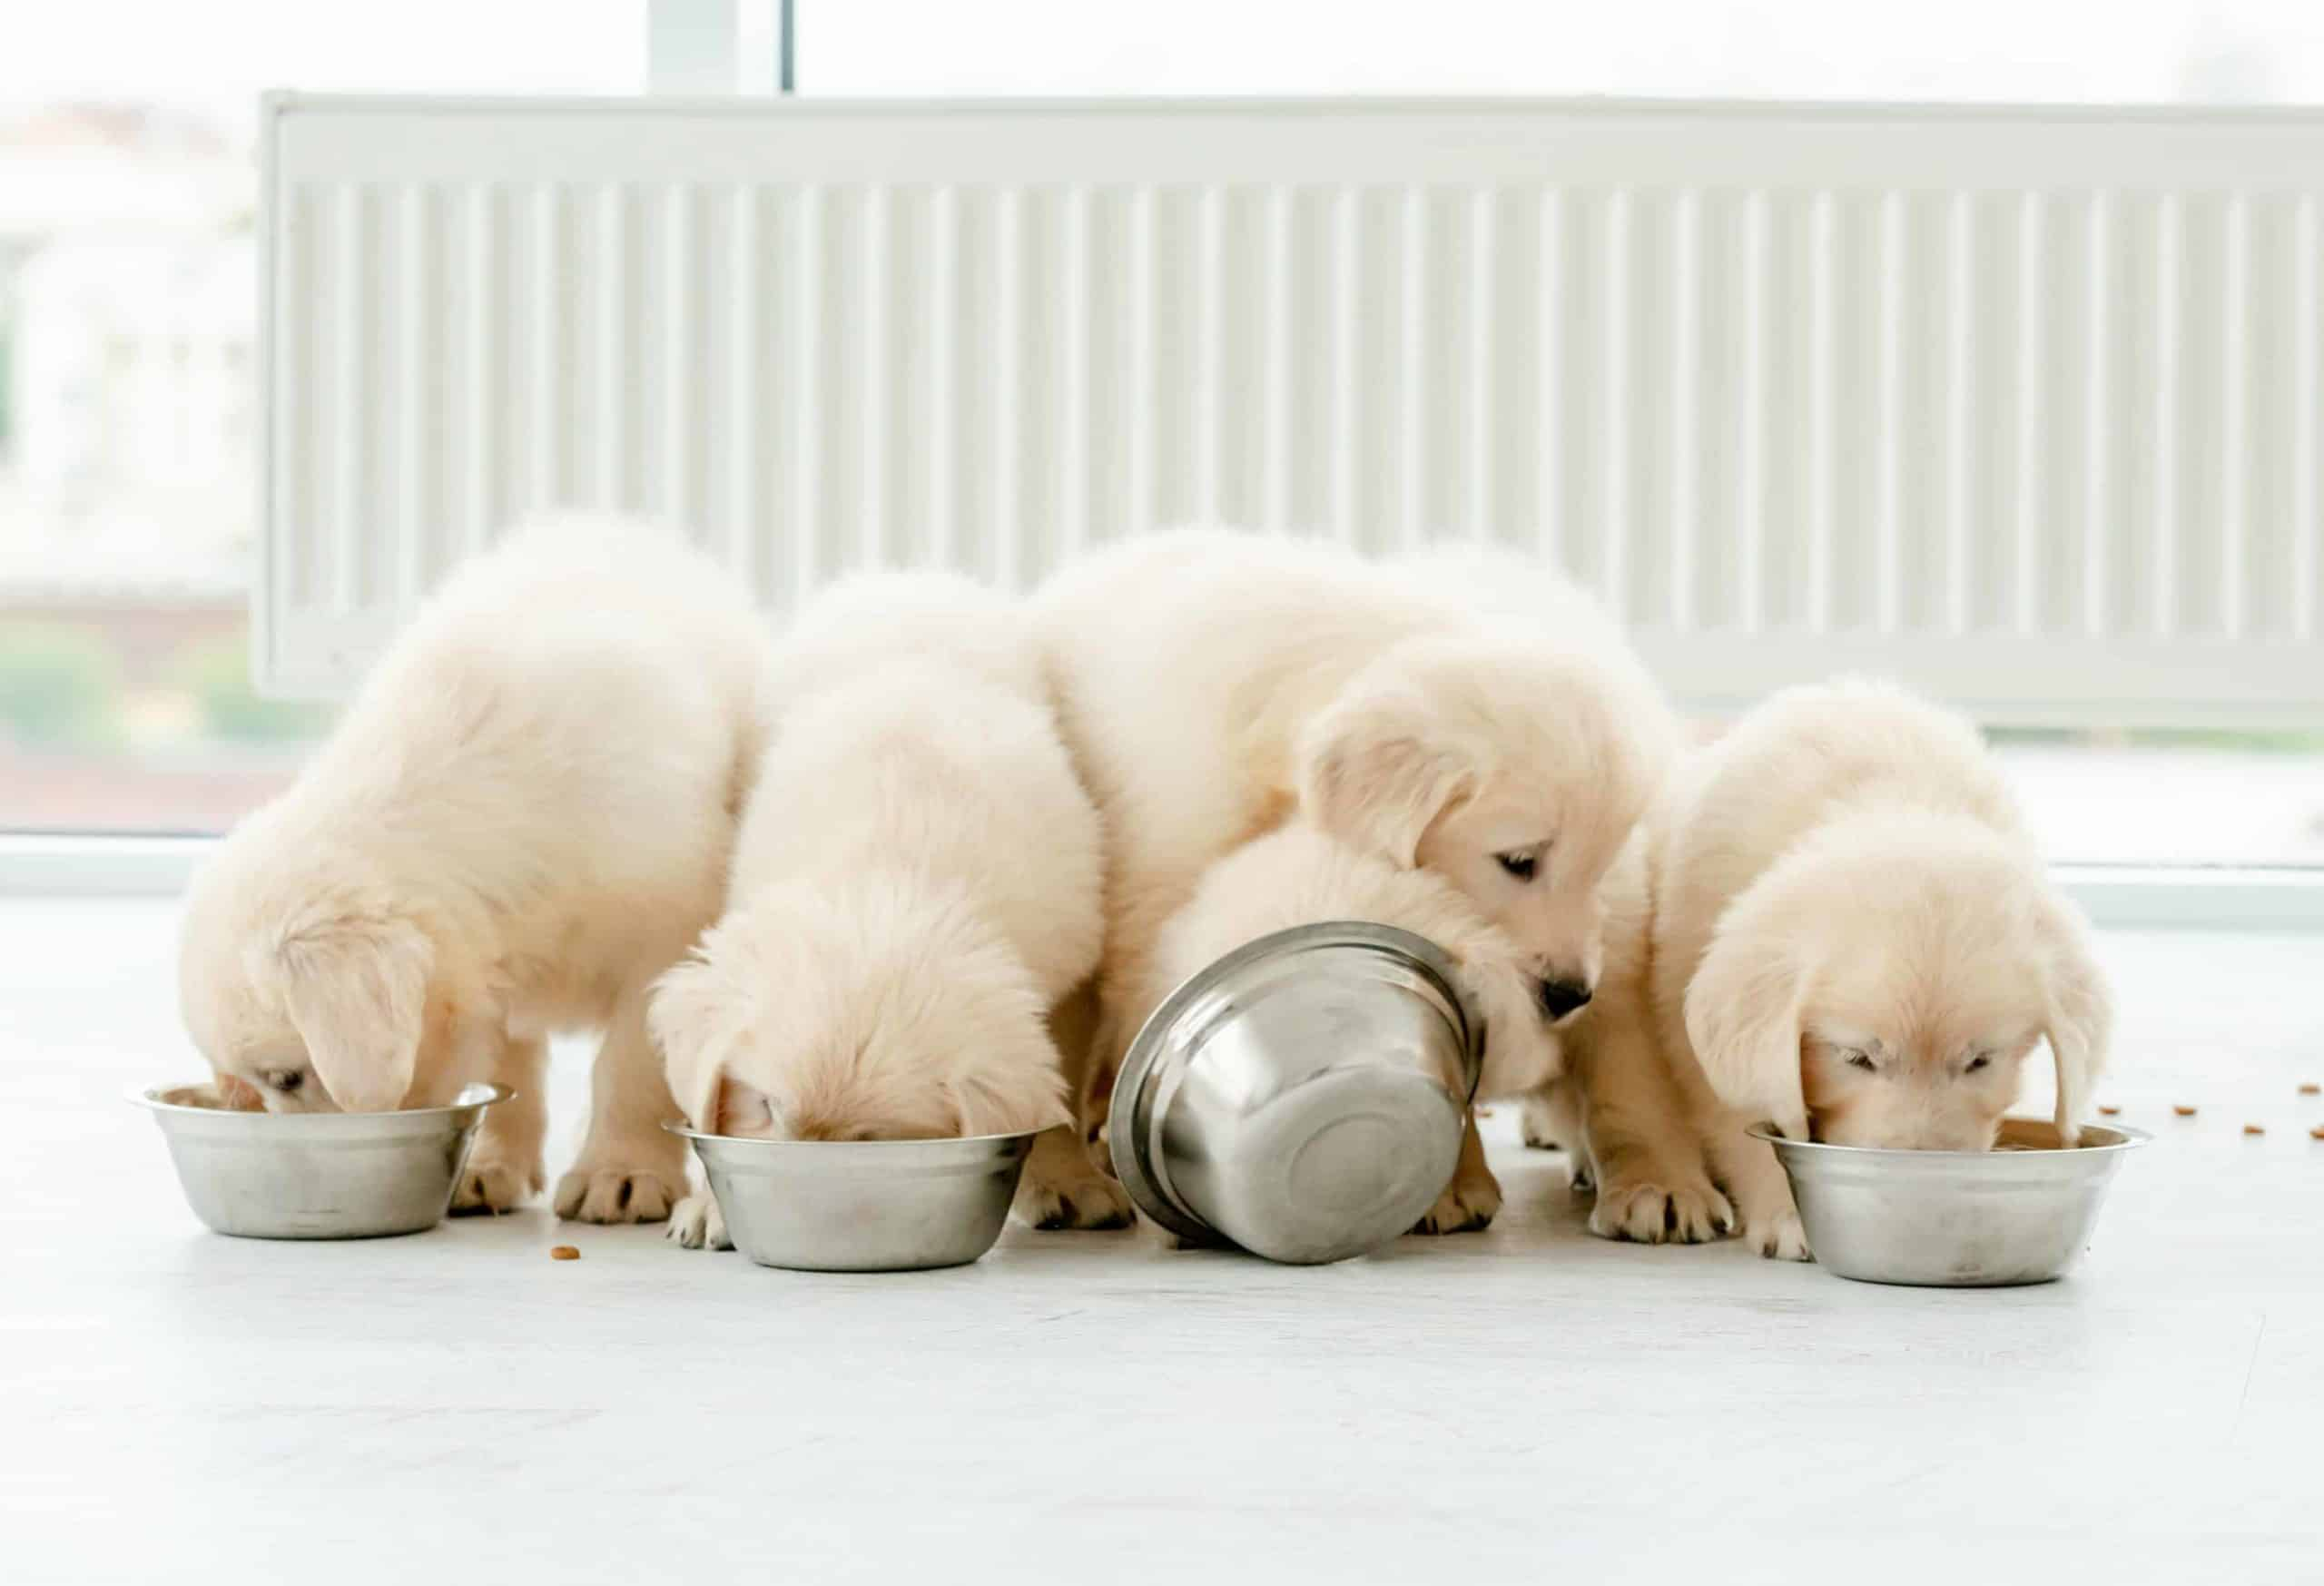 Golden retriever puppies eat food from metal bowls. Life-stage nutrition is a vital consideration because puppies need high-protein, high-calorie food formulated specifically for puppies.